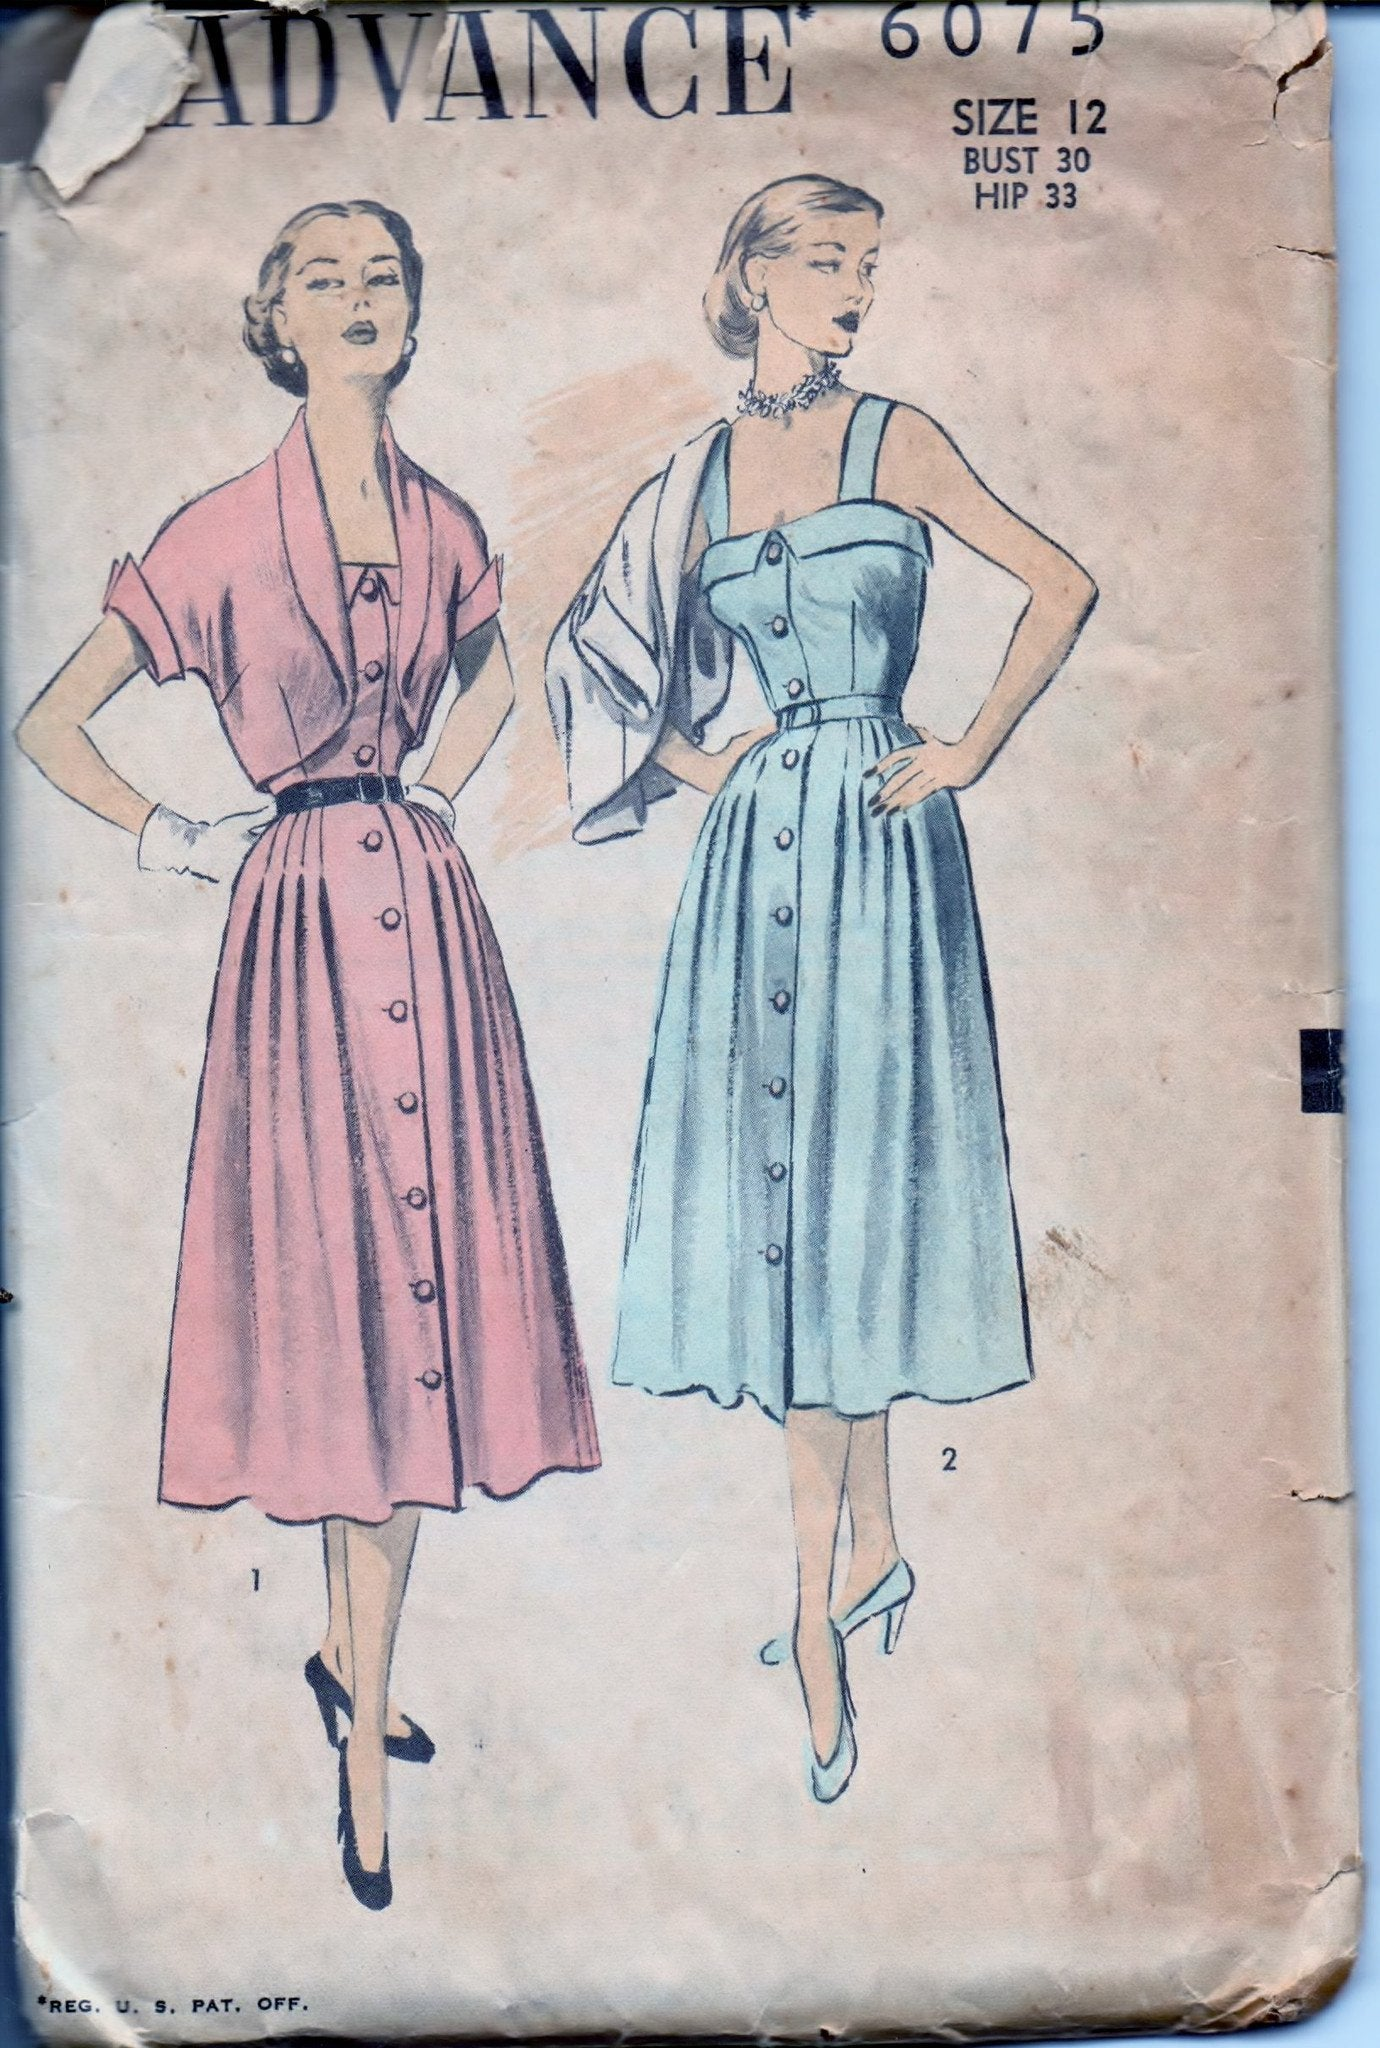 Advance 6075 Ladies Front Buttoned Sun Dress Bolero Jacket Vintage 1950's Sewing Pattern - VintageStitching - Vintage Sewing Patterns